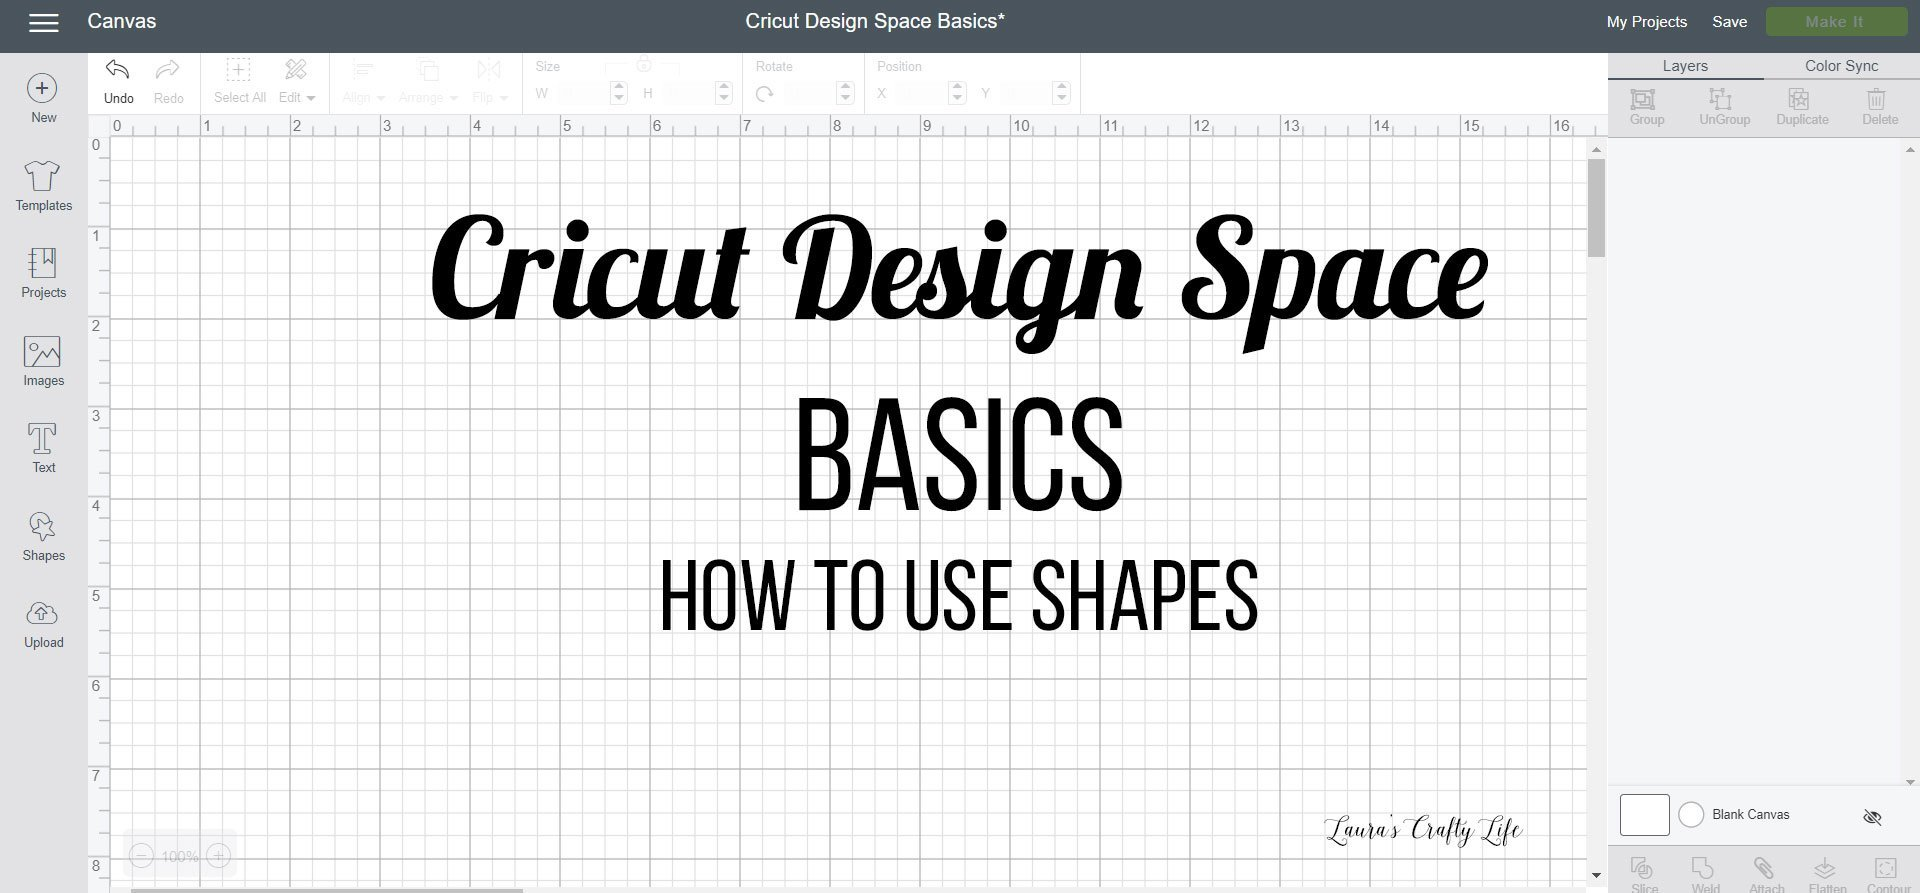 Cricut Design Space Basics - How to Use Shapes